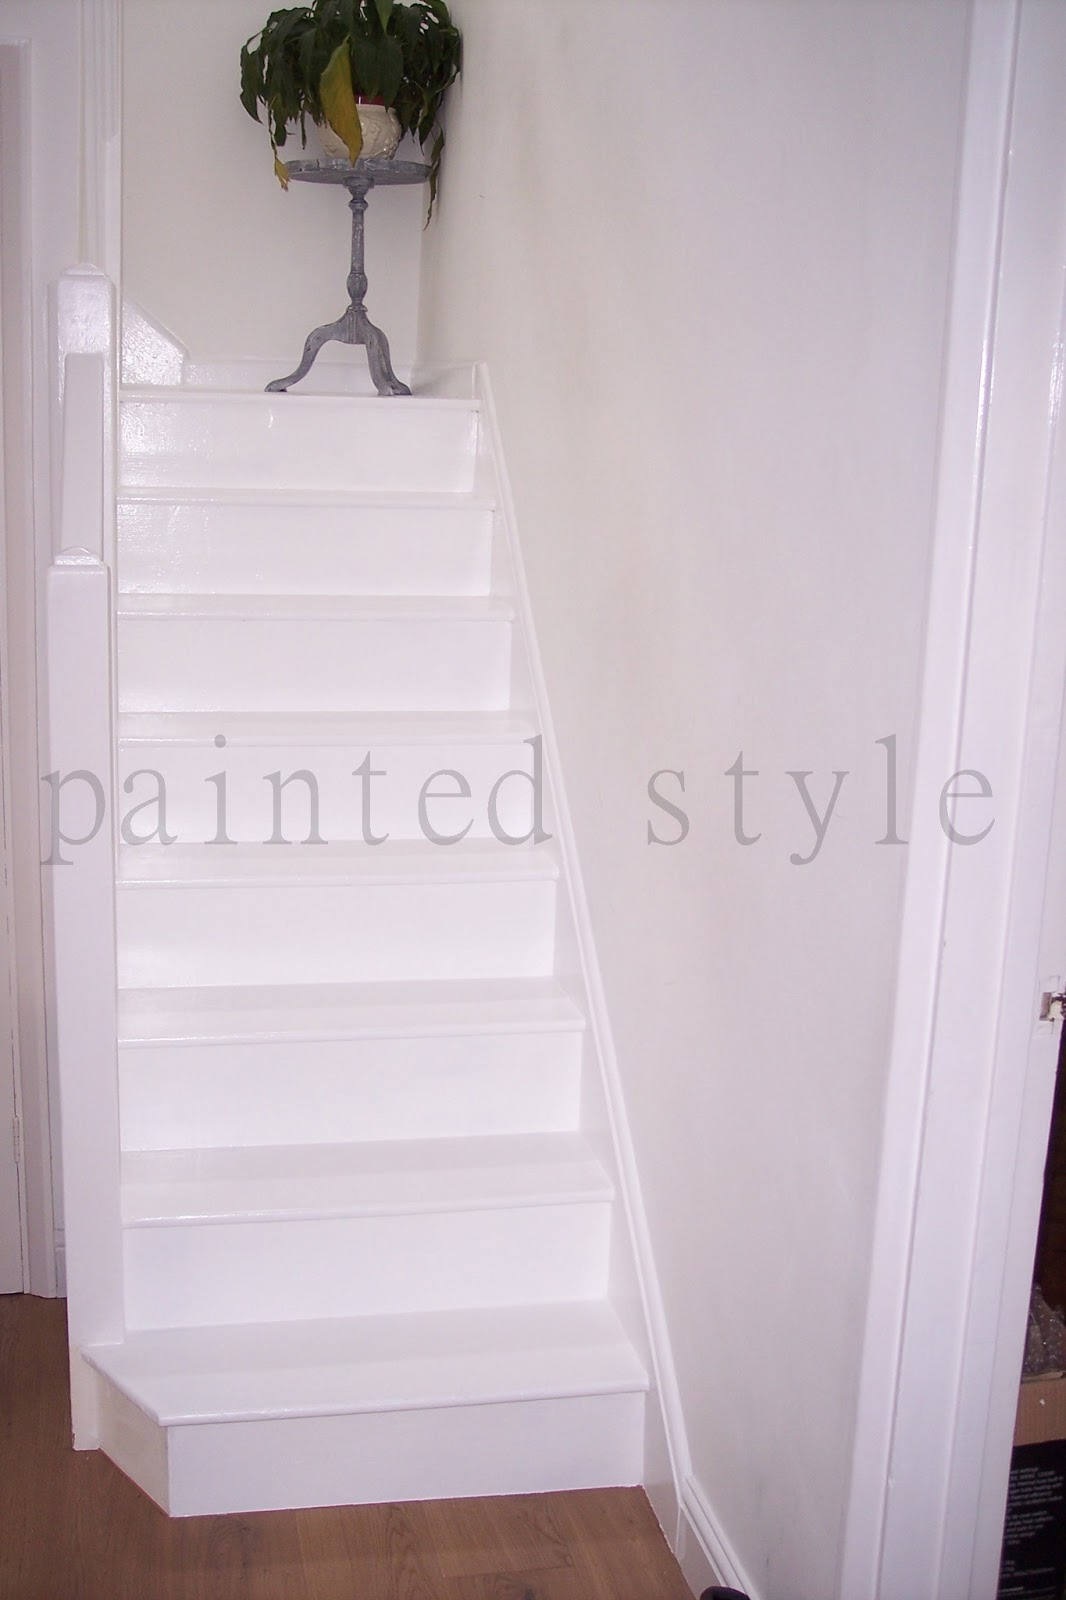 Painted Stairs Revealed